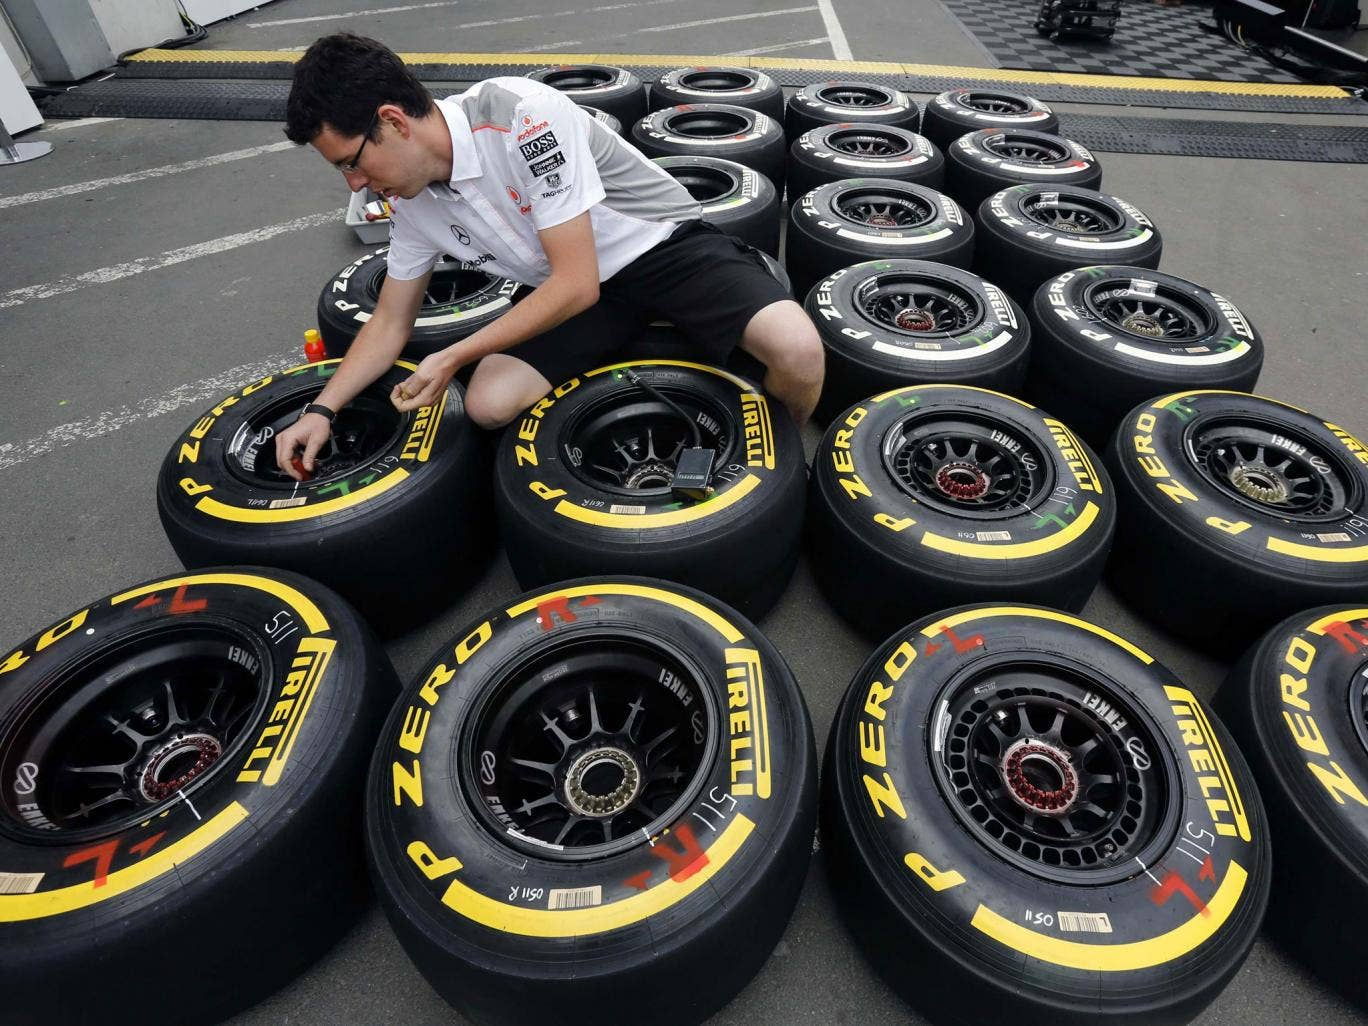 An engineer checks the new Kevlar-enforced rear tyres of McLaren drivers Sergio Perez and Jenson Button in preparation for the German Grand Prix at the Nürburgring